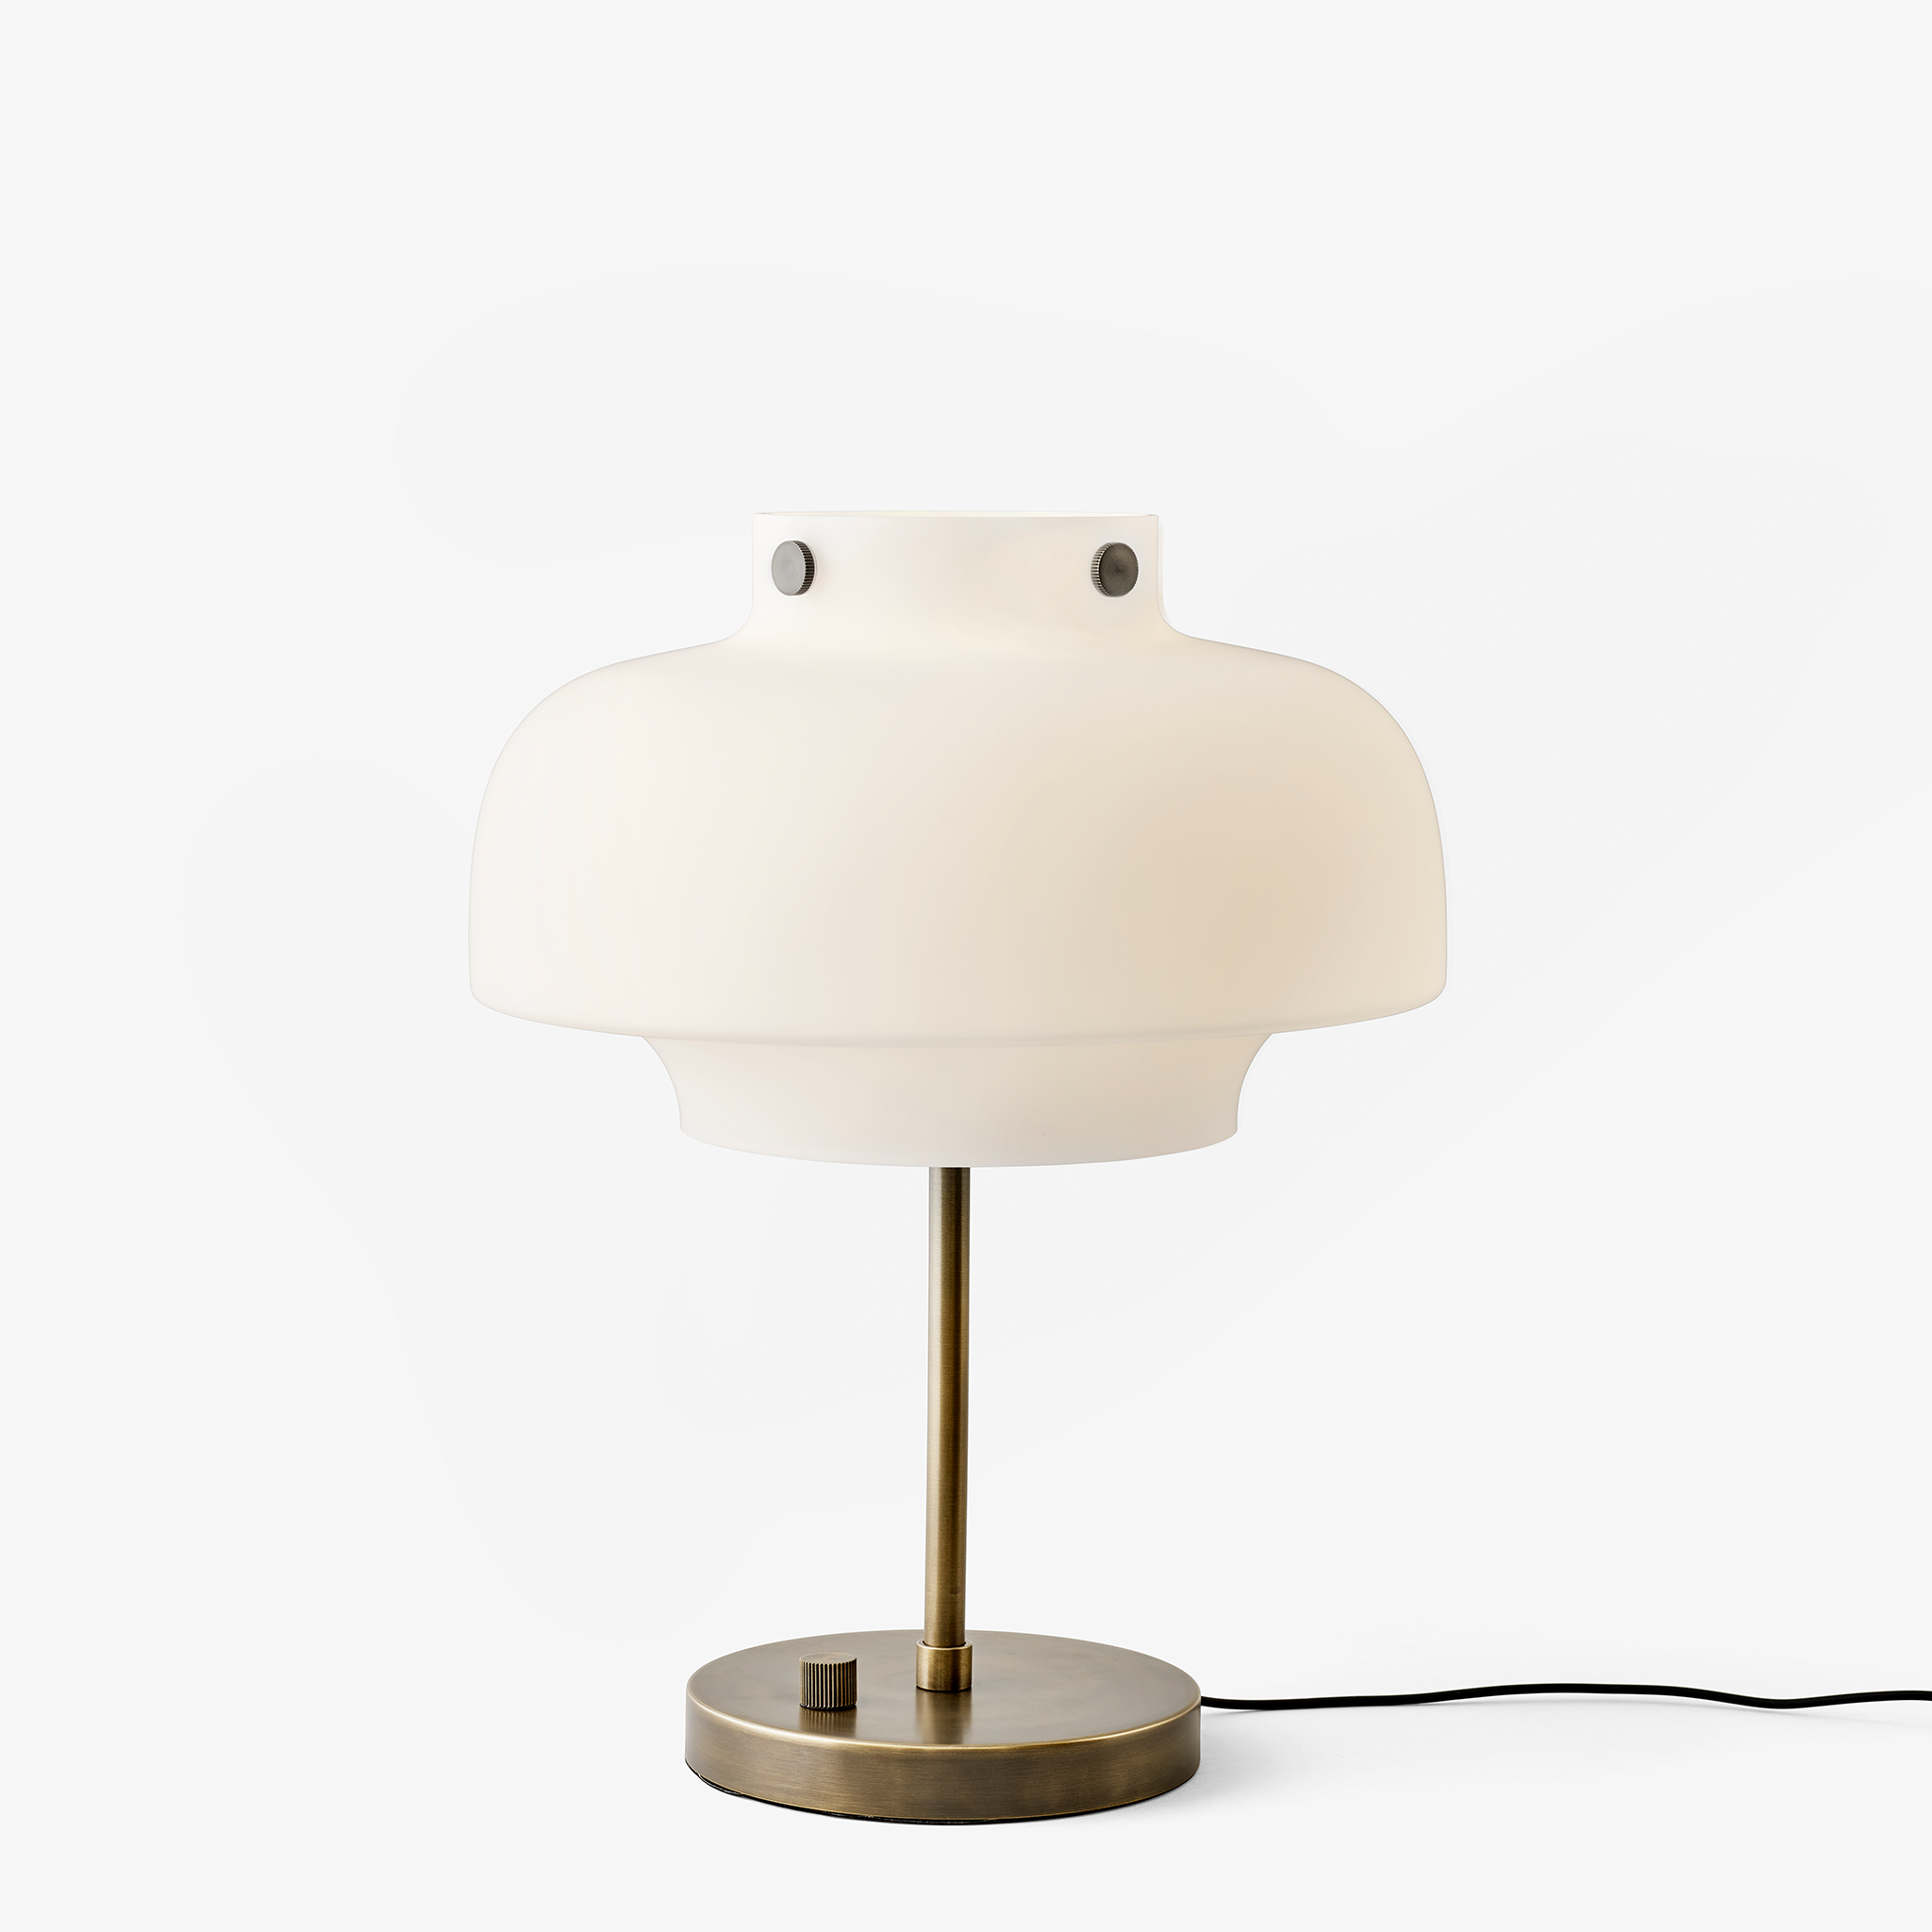 Copenhagen SC13 Table Lamp by Space Copenhagen for &Tradition